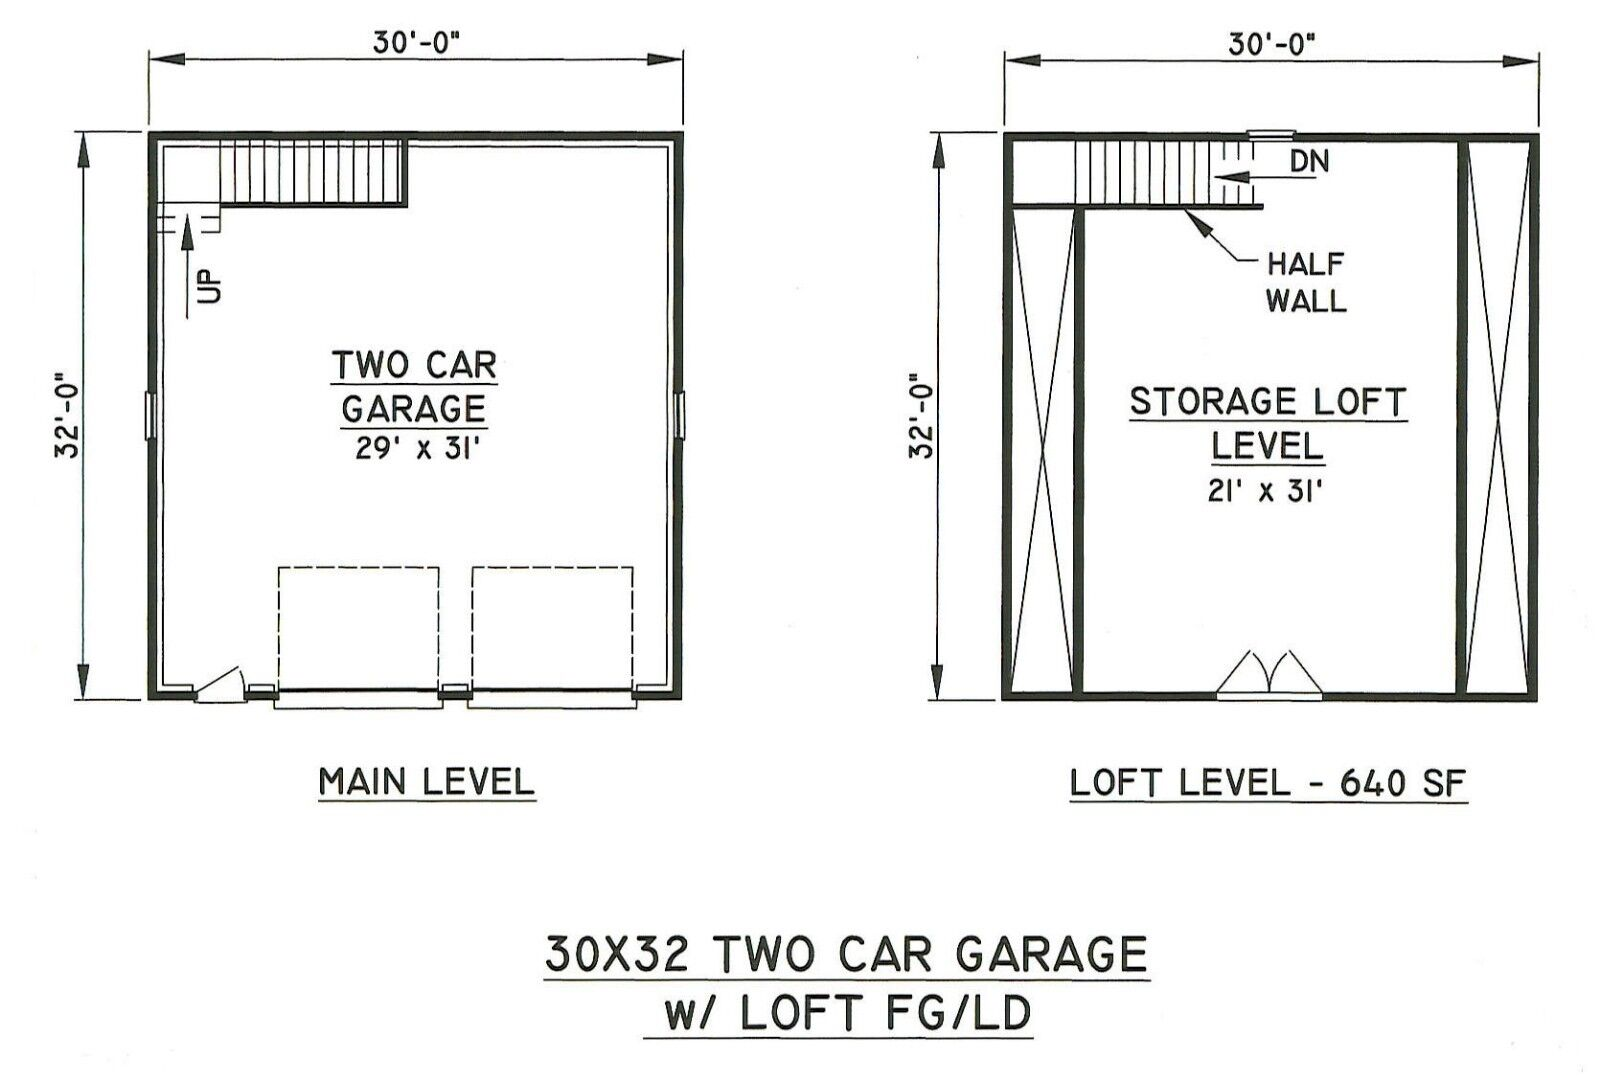 30x32 2 car front gable garage building blueprint plans for How much to build a two car garage with loft